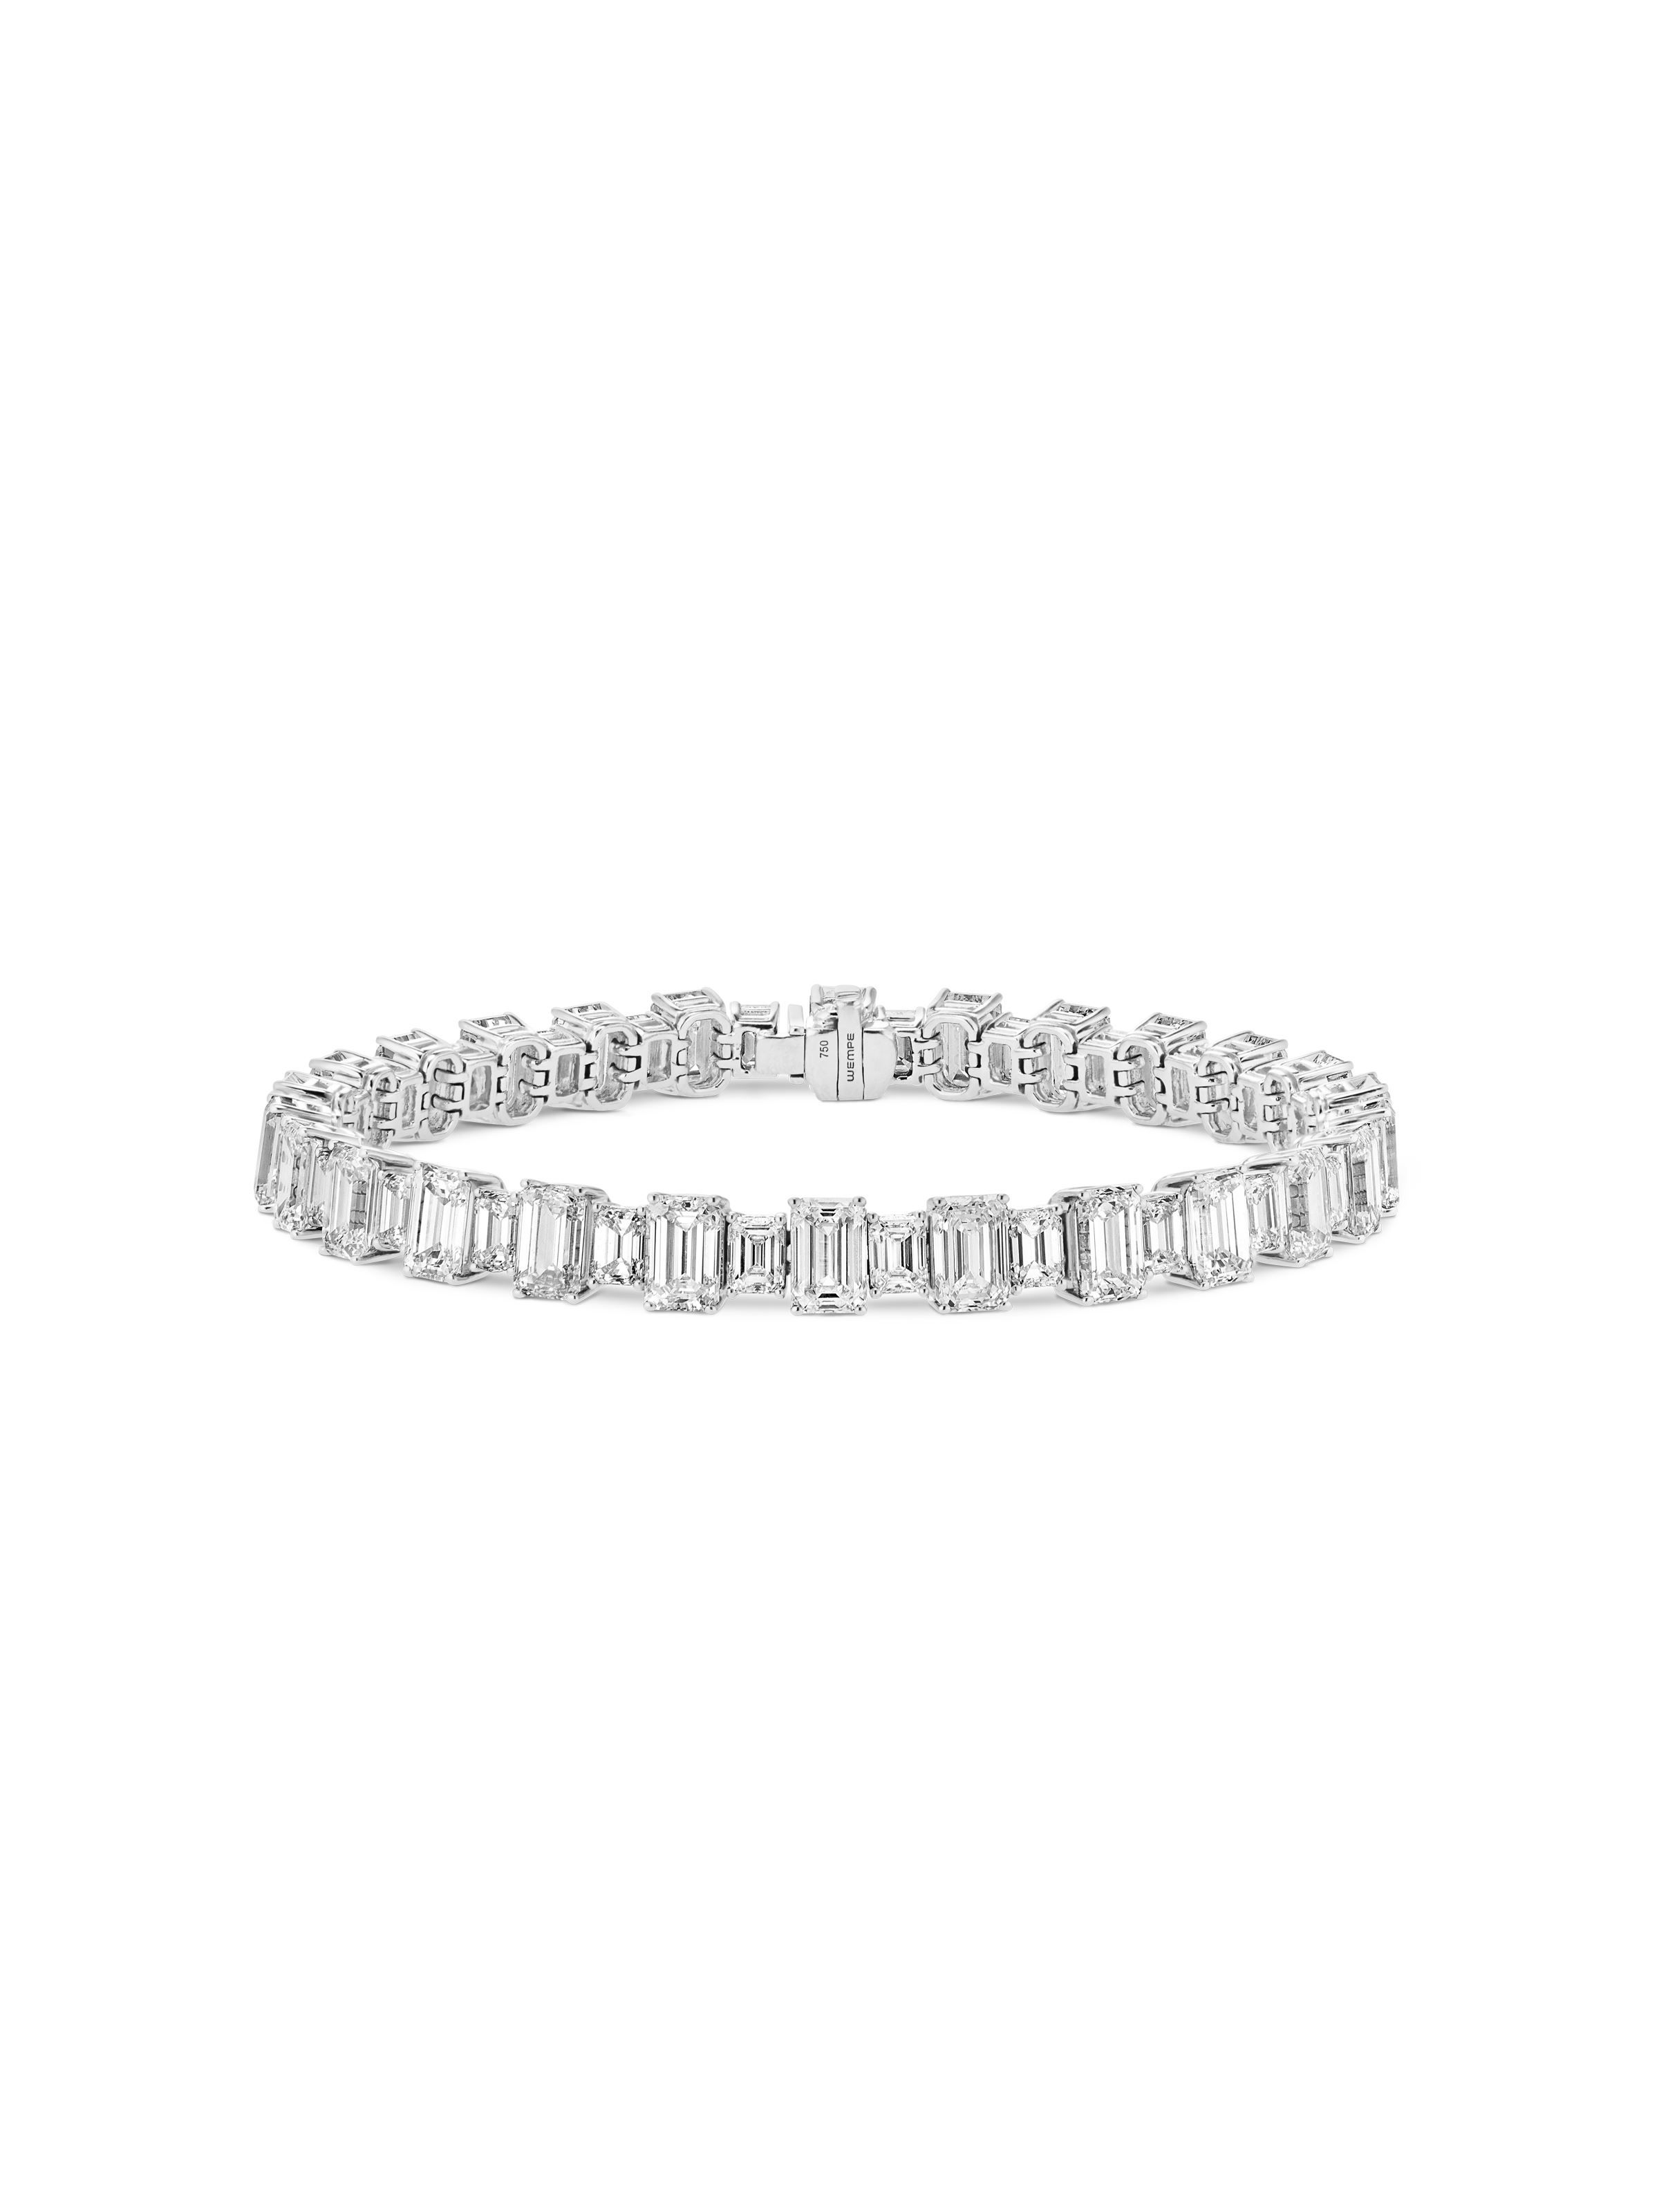 Wempe rivière tennis bracelet white gold diamonds cm a girls